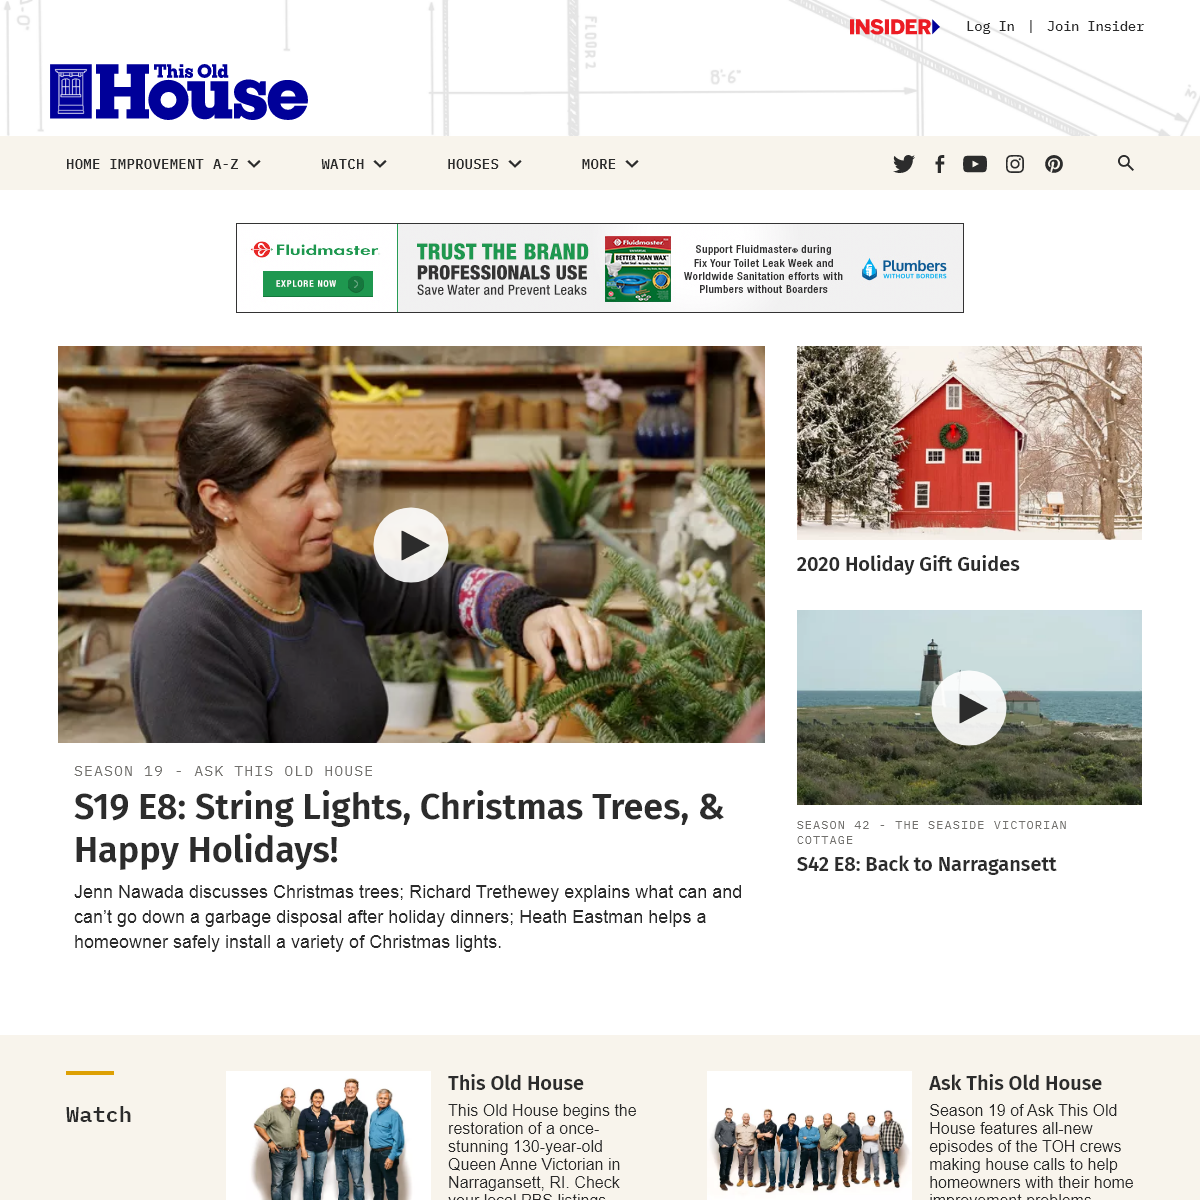 Home Improvement and Remodeling - This Old House